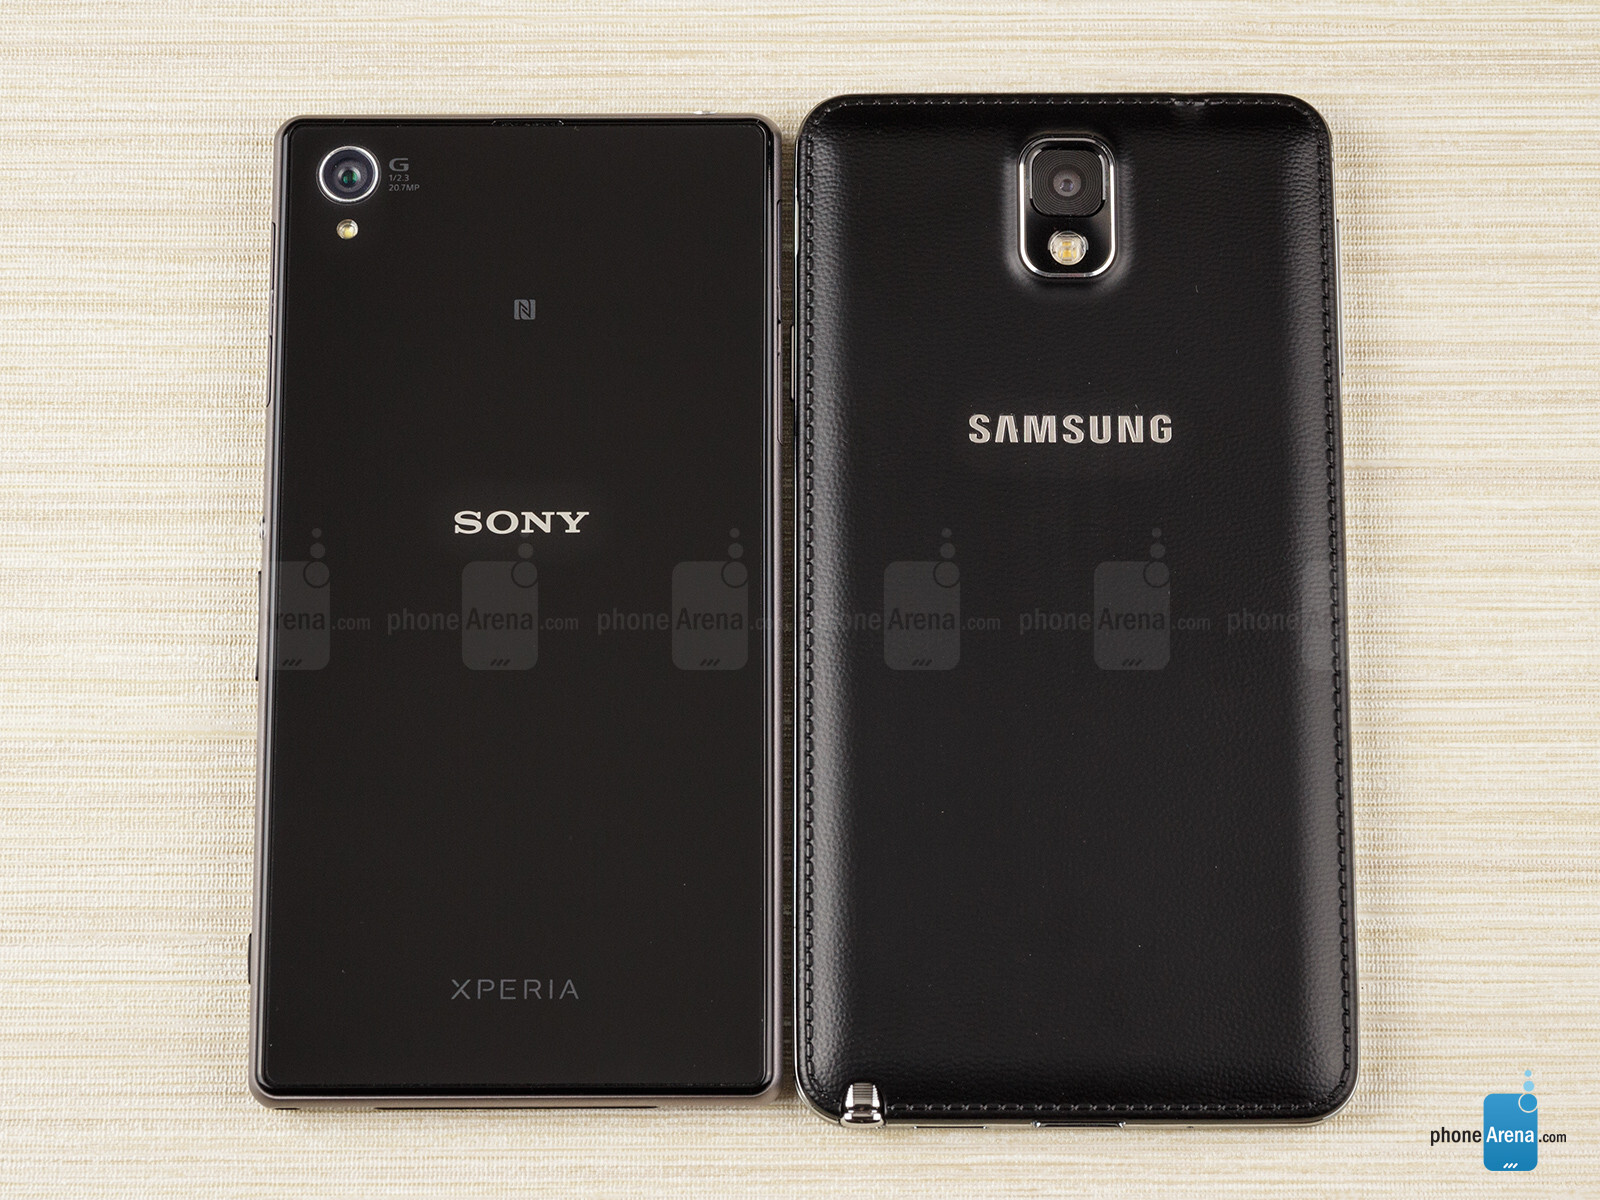 samsung galaxy note 3 vs sony xperia z1. Black Bedroom Furniture Sets. Home Design Ideas